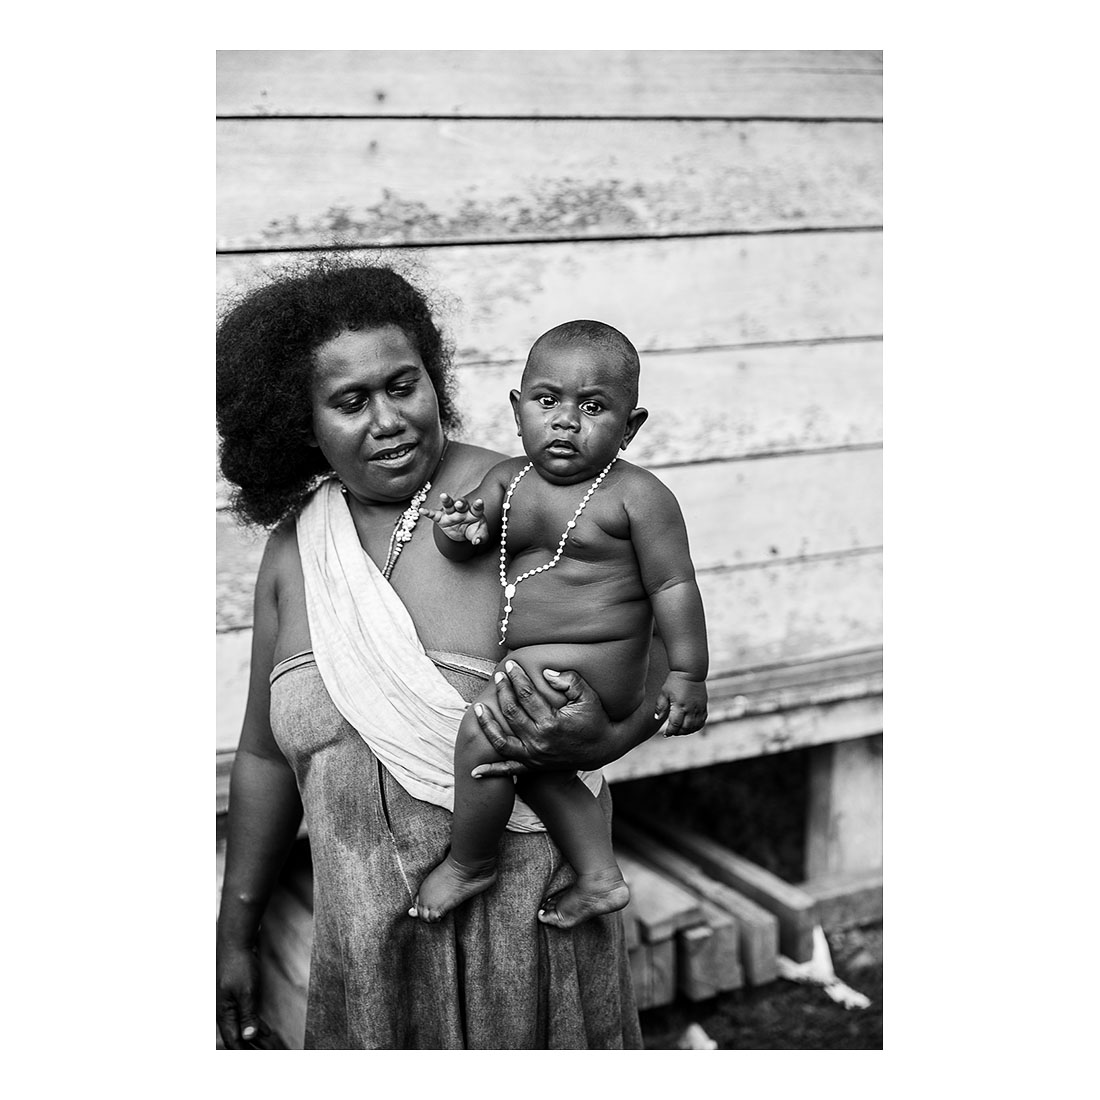 #44 West Guadalcanal, Solomon Islands  (2016).  Archival pigment print on Ilford paper. Exhibition print 36cm x 24cm. Different sizes available.